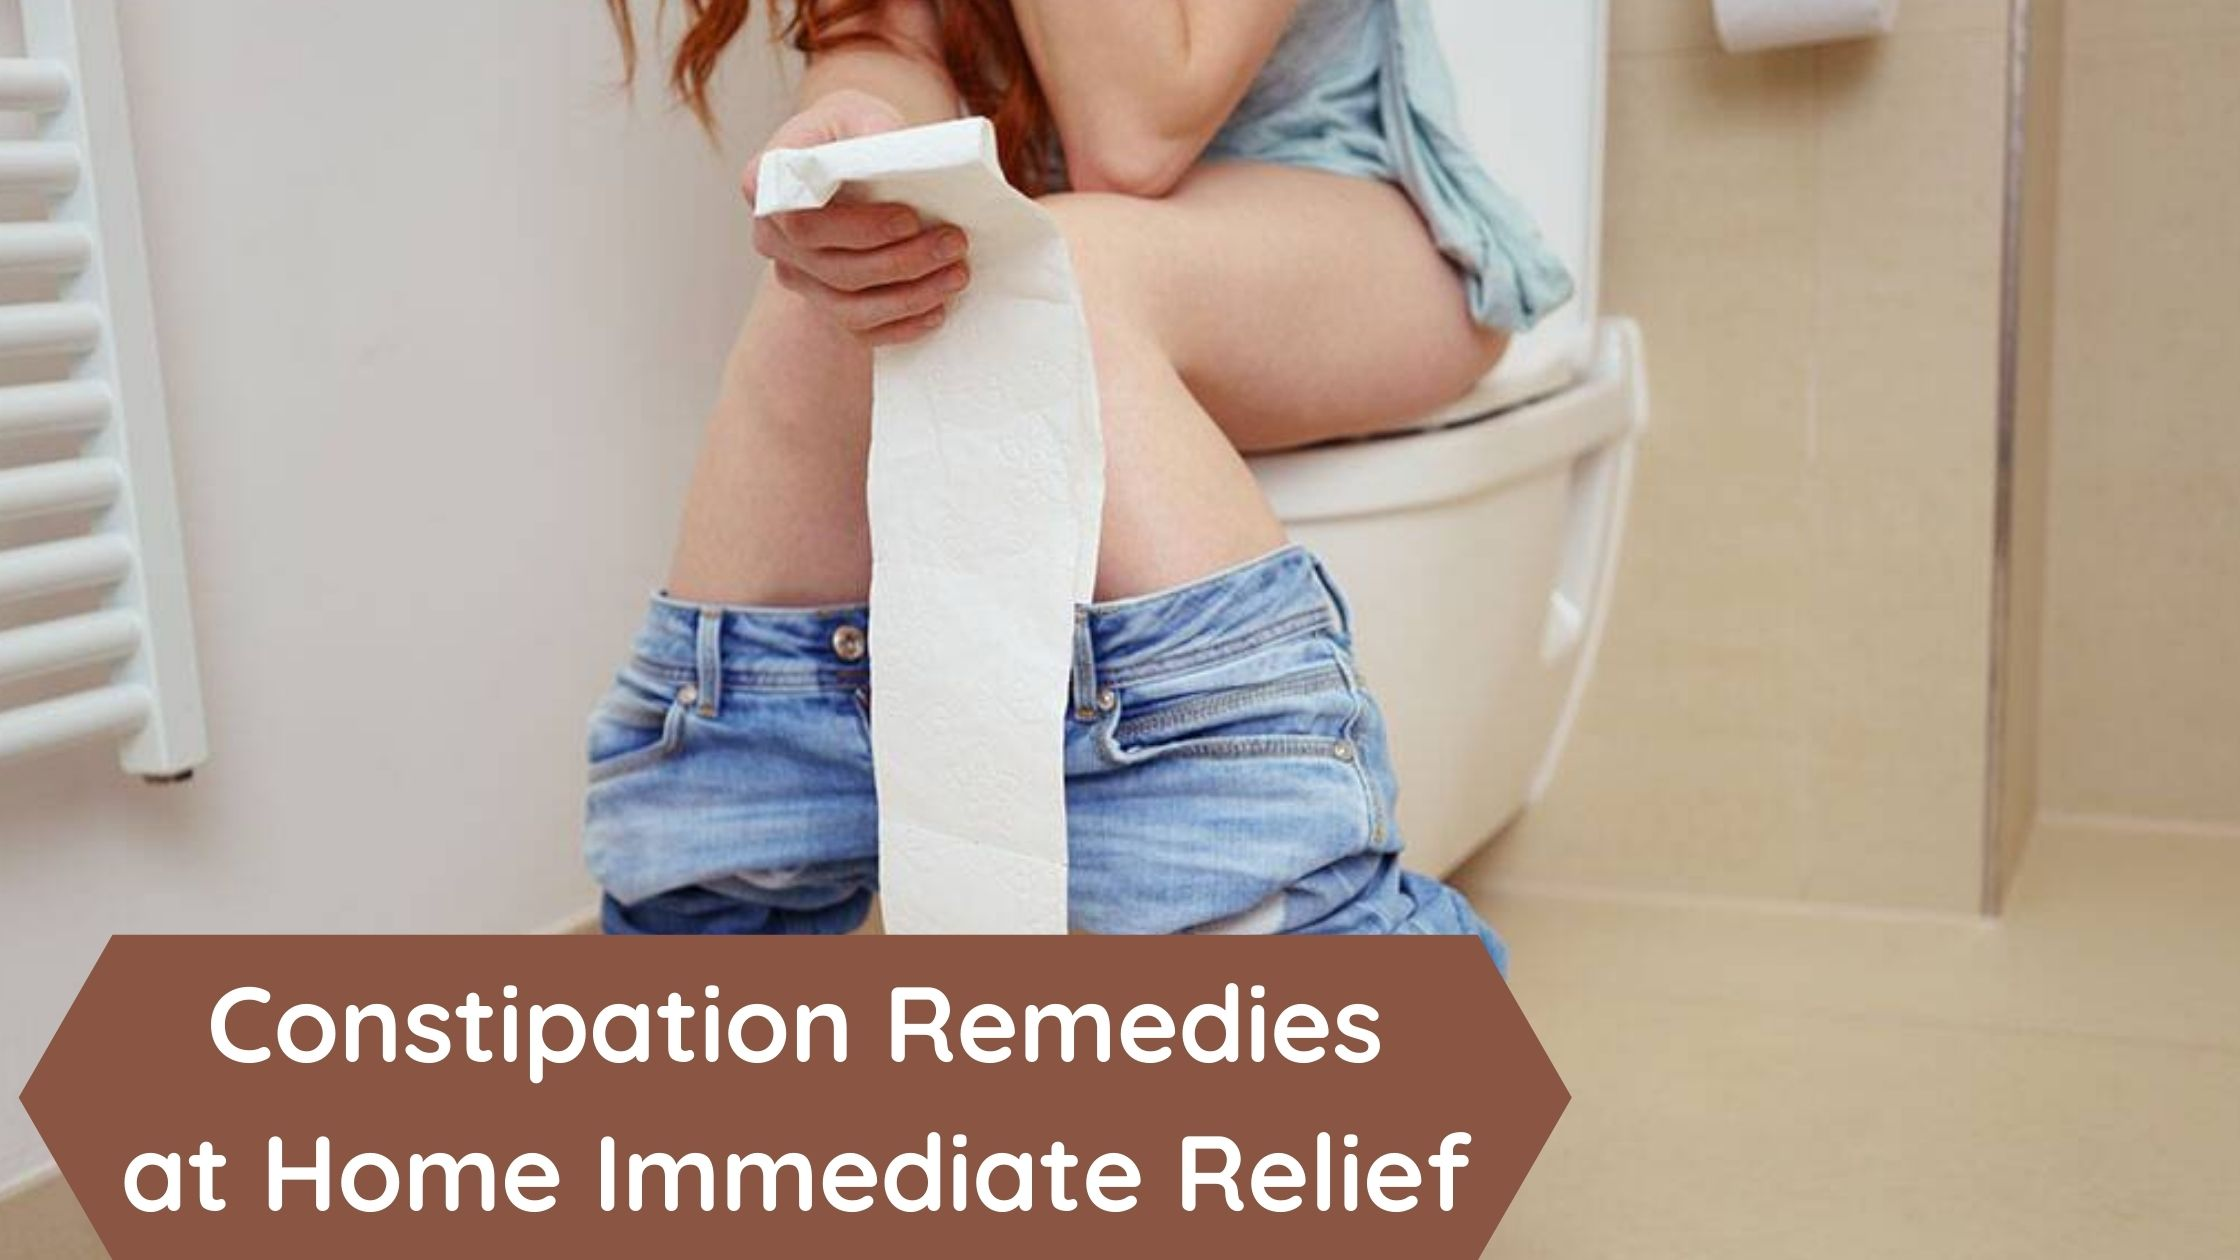 Constipation Remedies at Home Immediate Relief